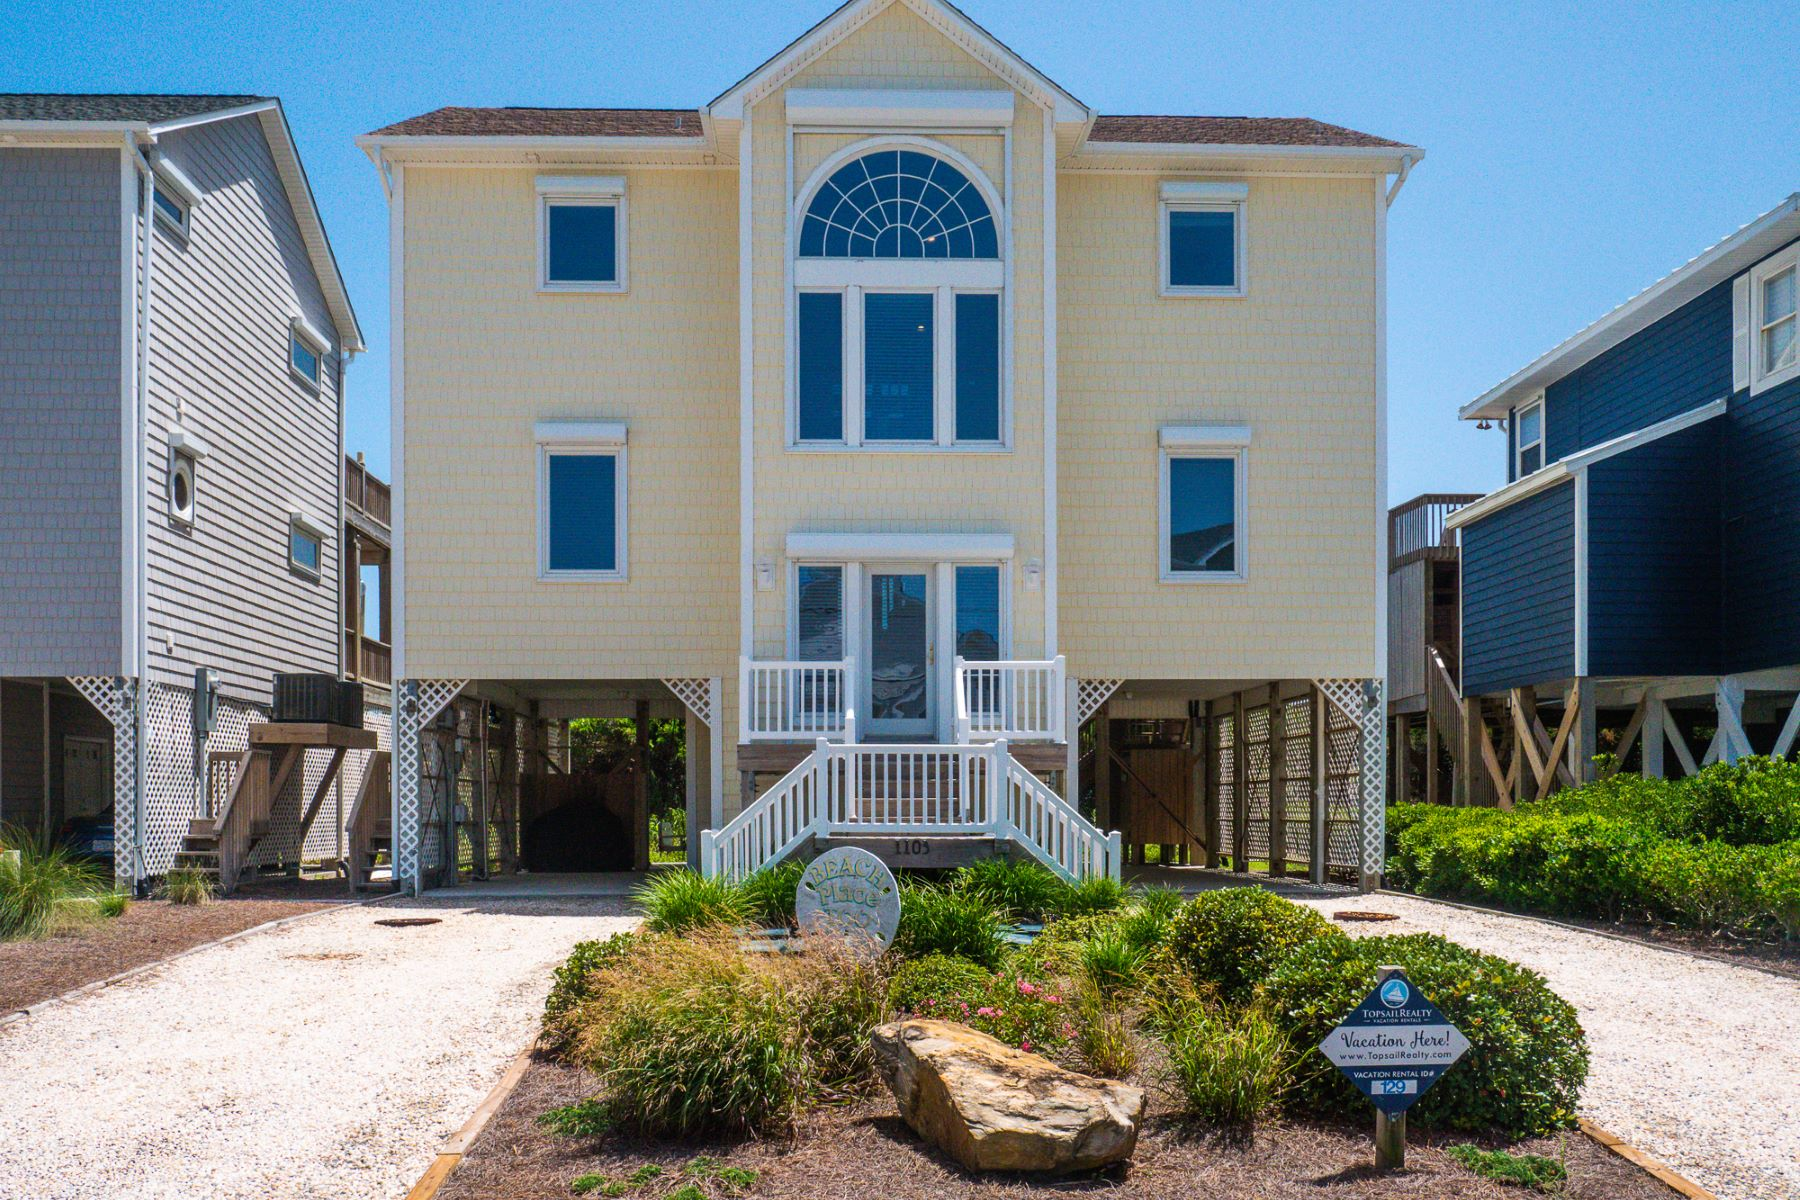 Single Family Homes for Active at OceanFront Home in Topsail Beach 1103 Ocean Blvd Topsail Beach, North Carolina 28445 United States